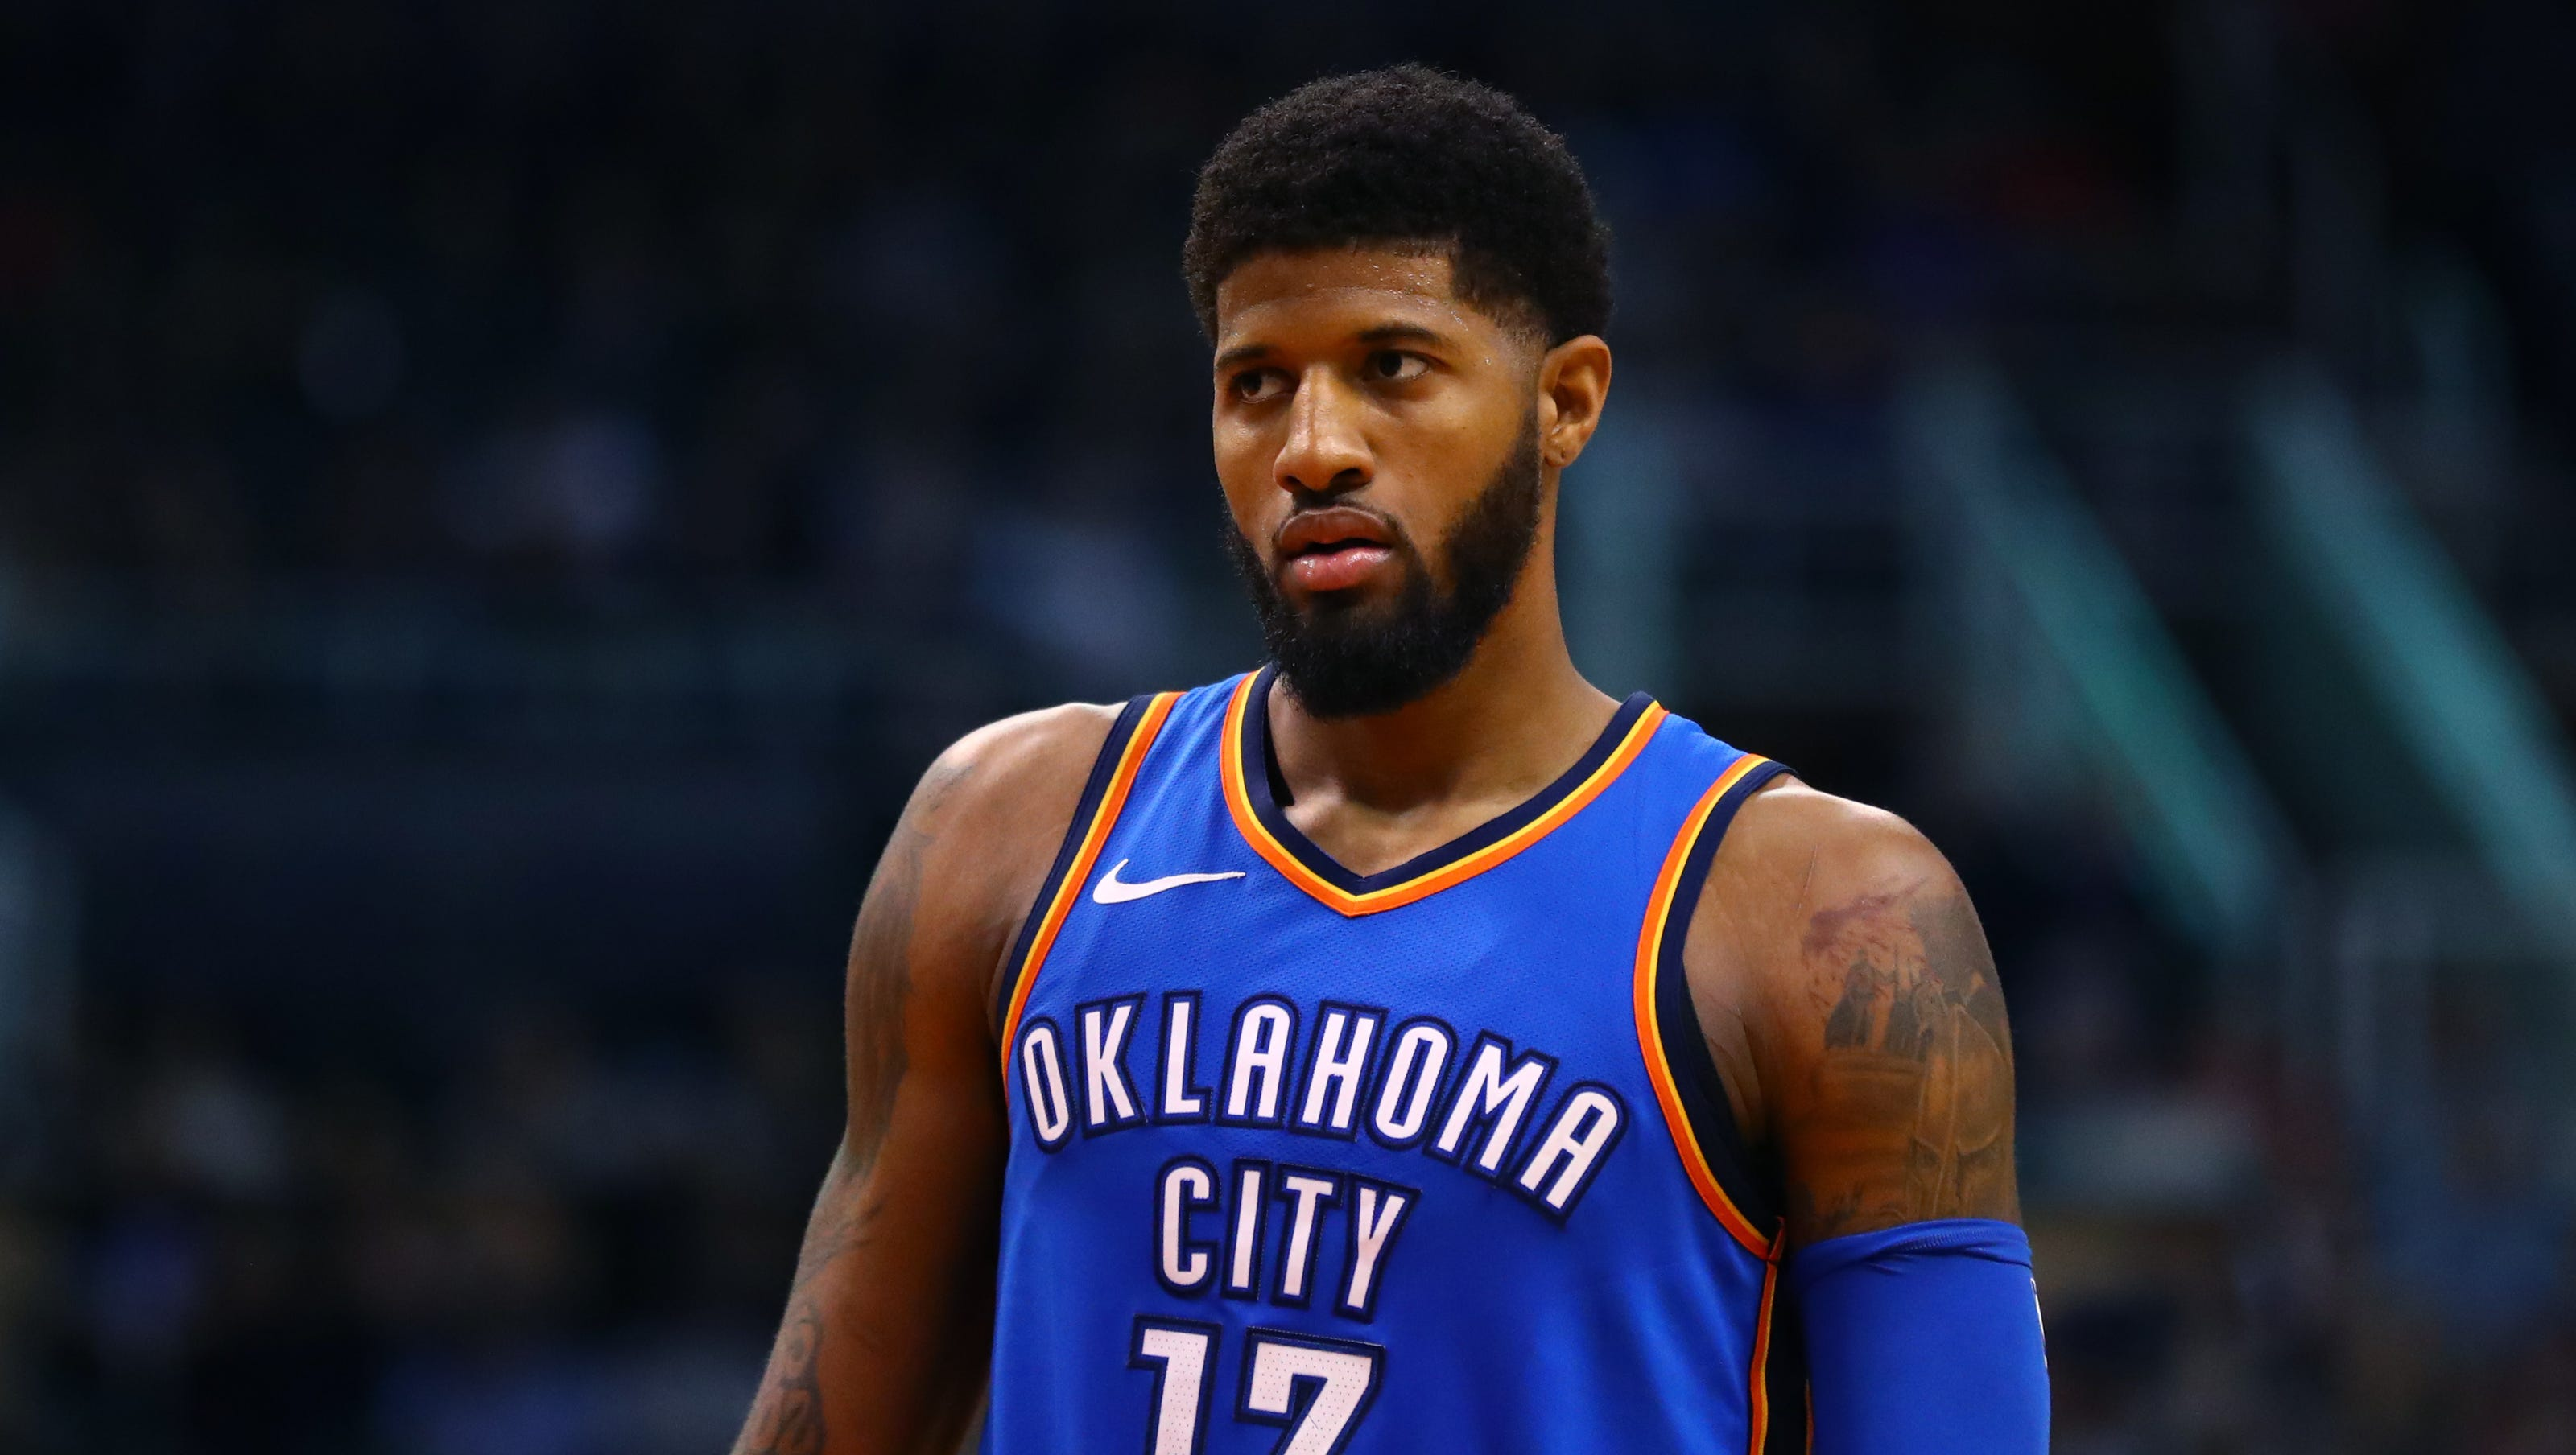 Paul George: Paul George To Opt Out Of Contract With Oklahoma City Thunder